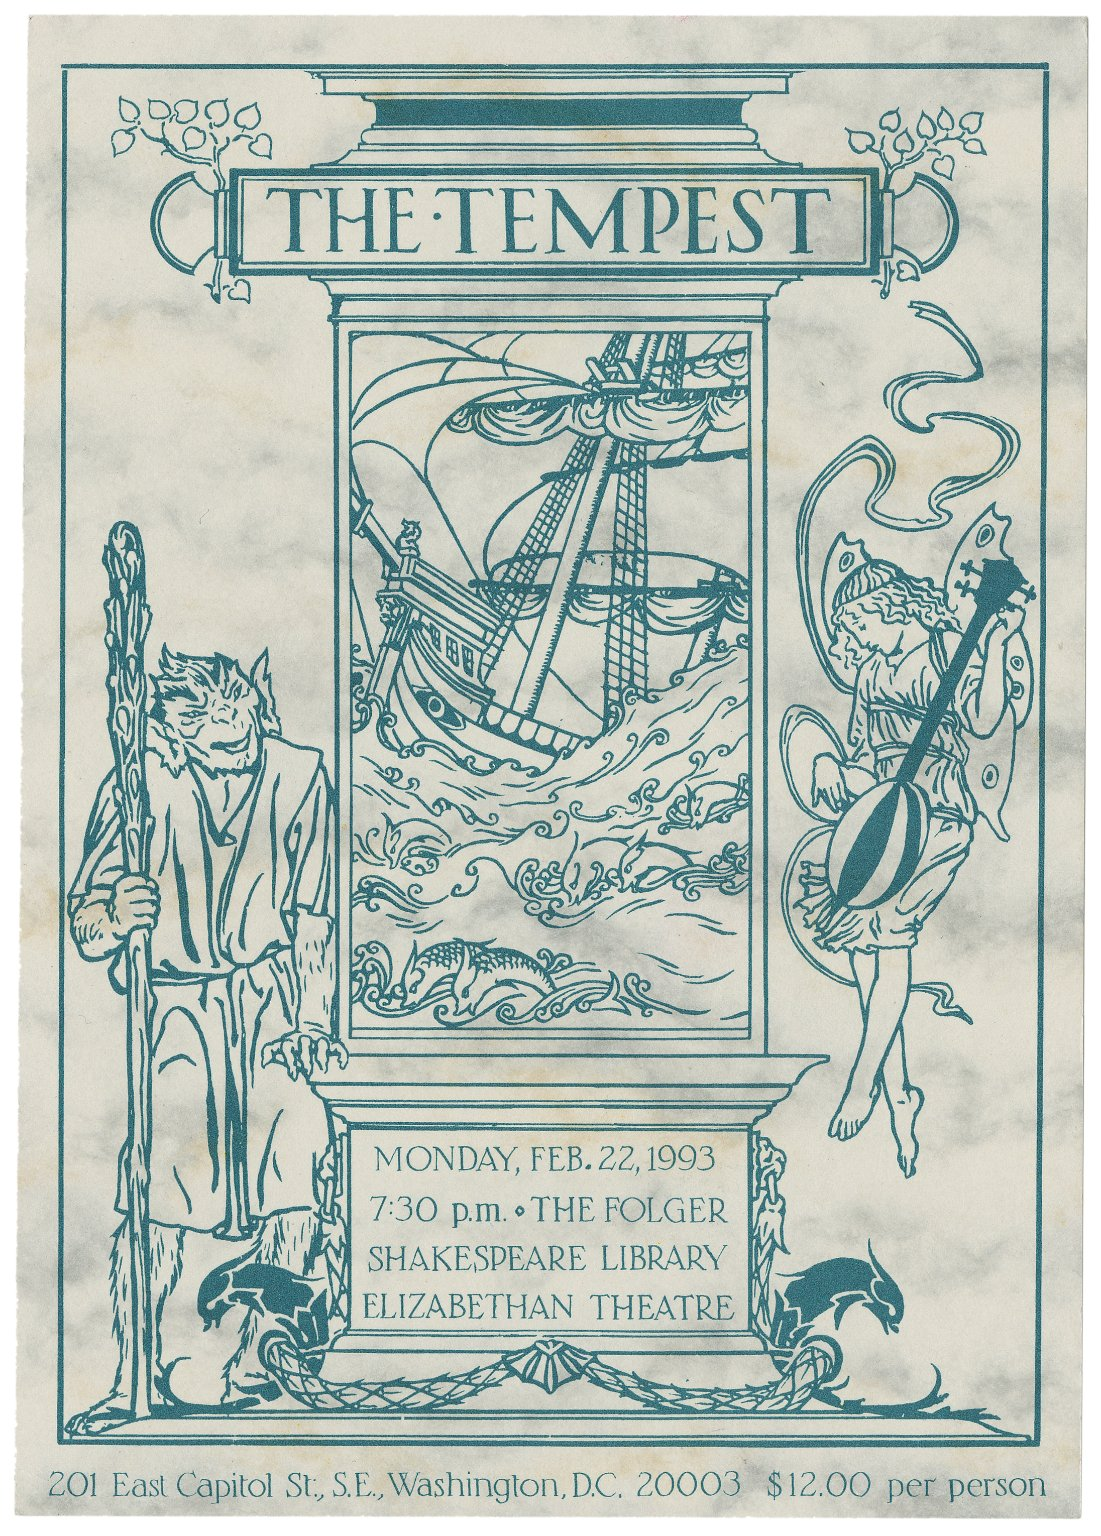 Postcard promoting a staging of The Tempest.